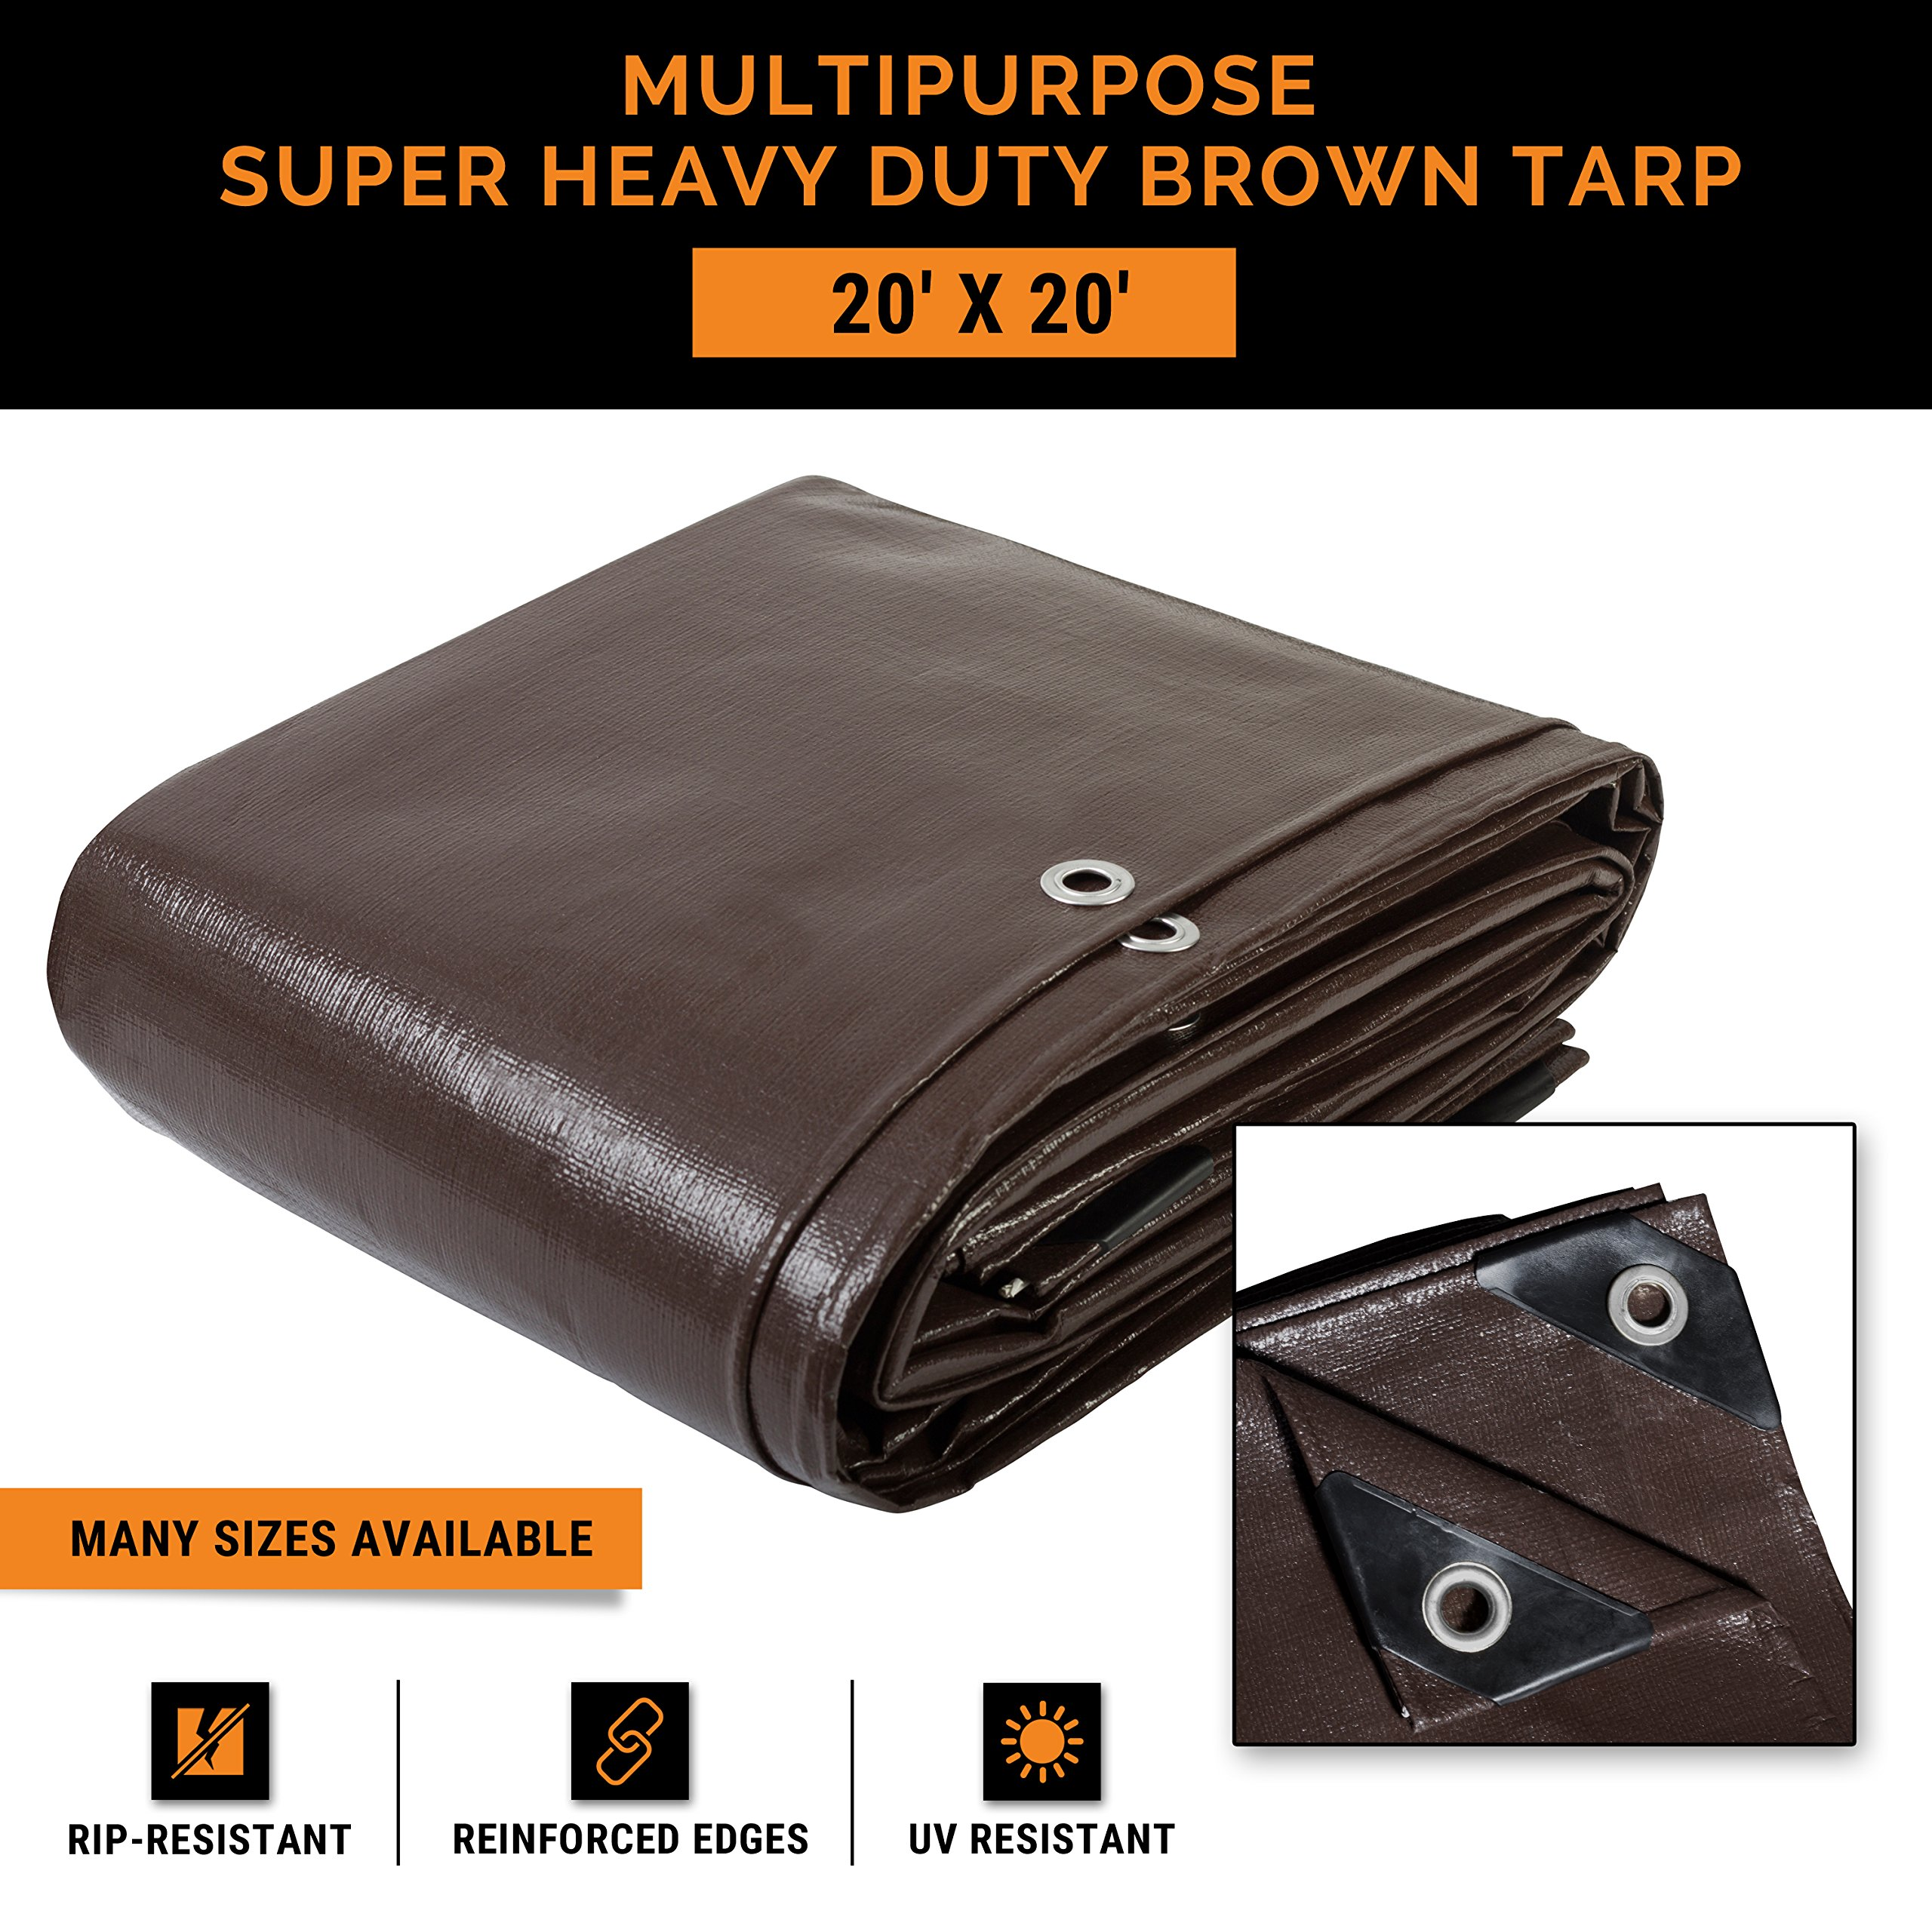 20' x 20' Super Heavy Duty 16 Mil Brown Poly Tarp Cover - Thick Waterproof, UV Resistant, Rot, Rip and Tear Proof Tarpaulin with Grommets and Reinforced Edges - by Xpose Safety